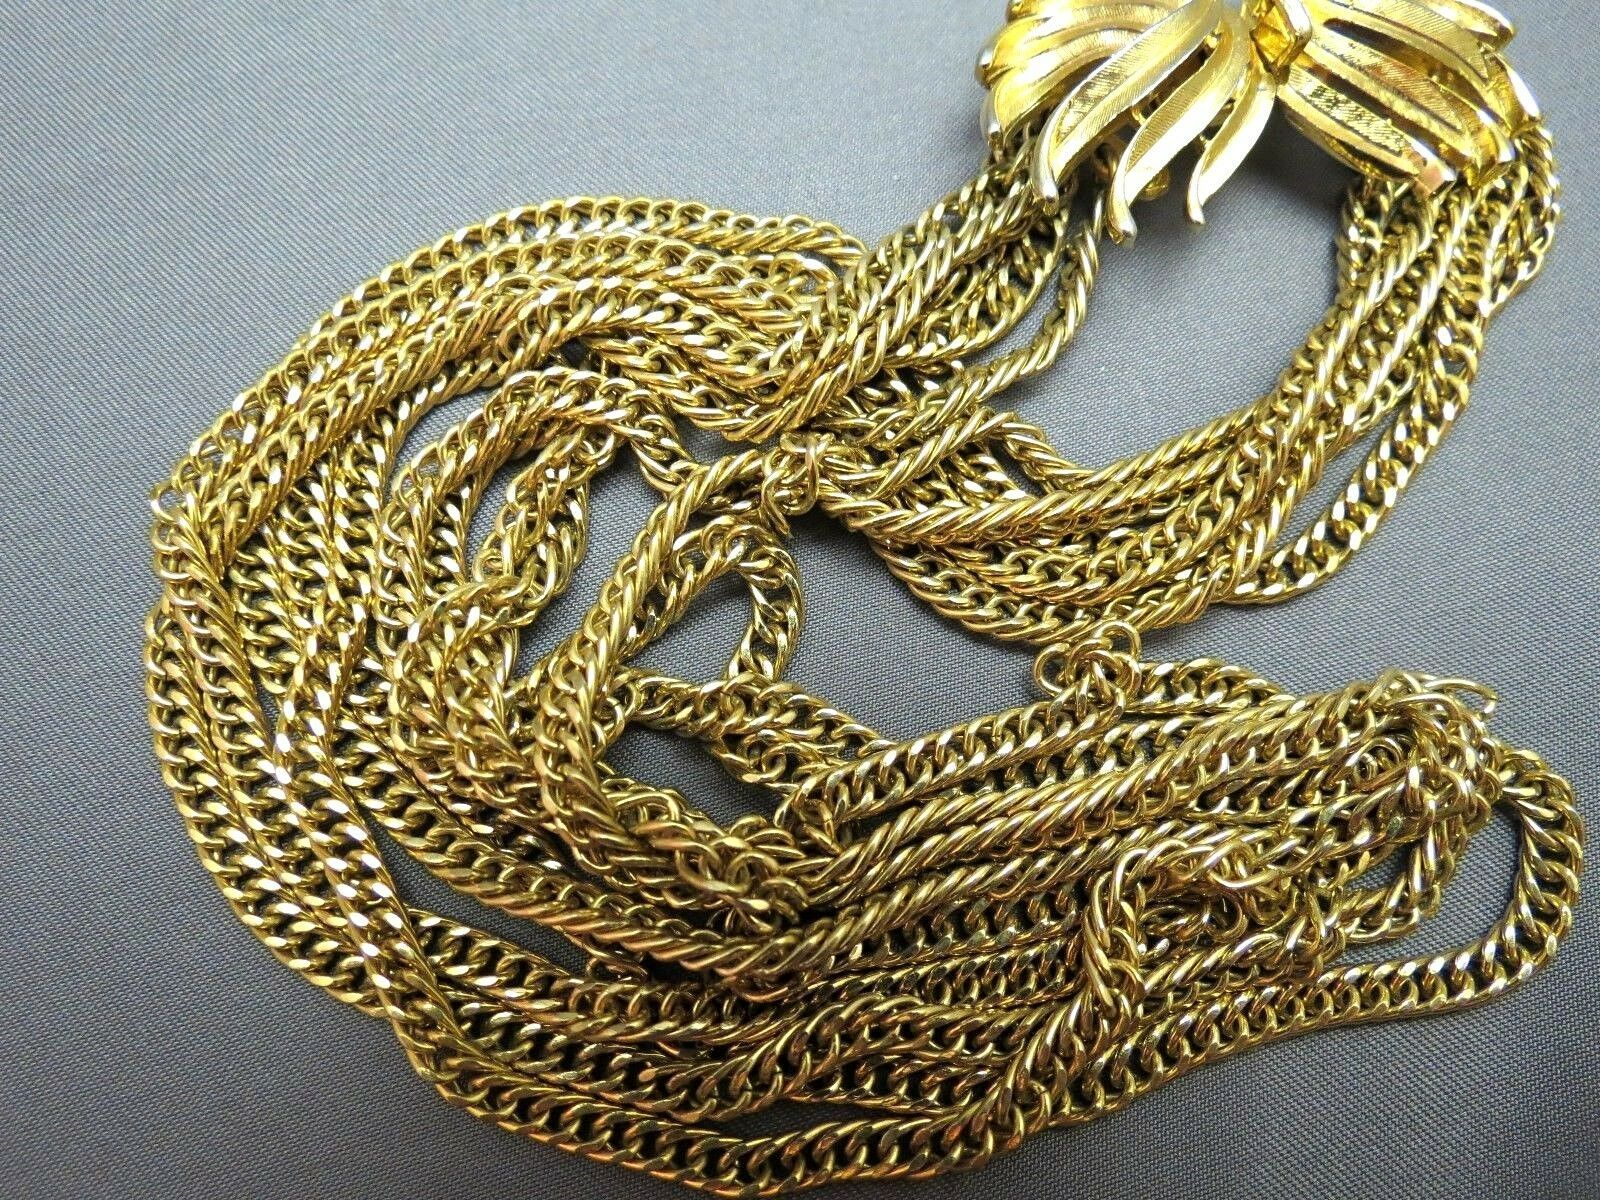 VTG Couture Trifari Necklace Mult Chain Gold Plated Designer Fancy Leaf Catch image 3